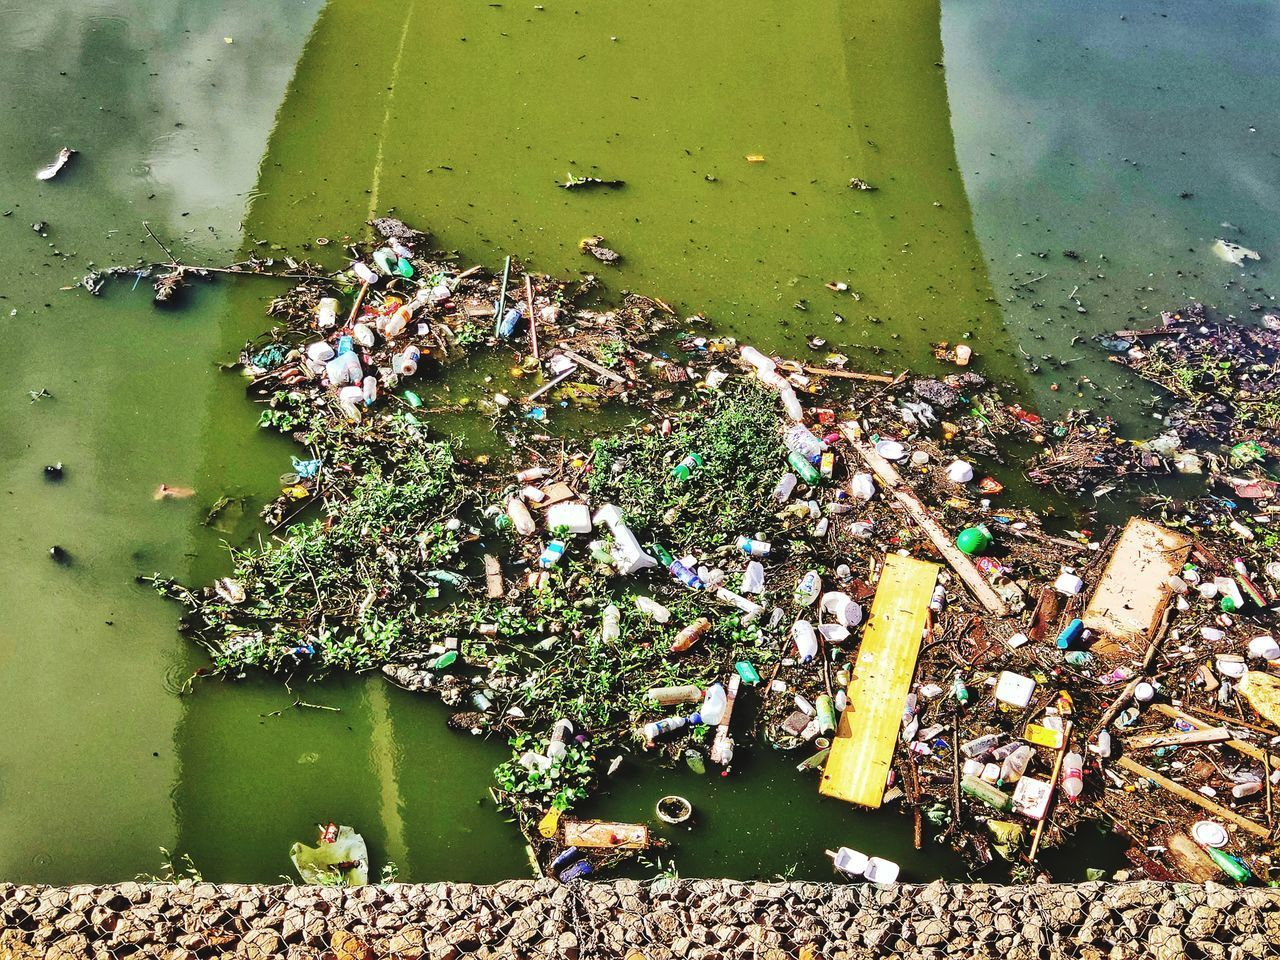 water, pollution, no people, nature, garbage, water pollution, unhygienic, environmental issues, high angle view, day, environmental damage, green color, outdoors, lake, social issues, animal, dirty, floating on water